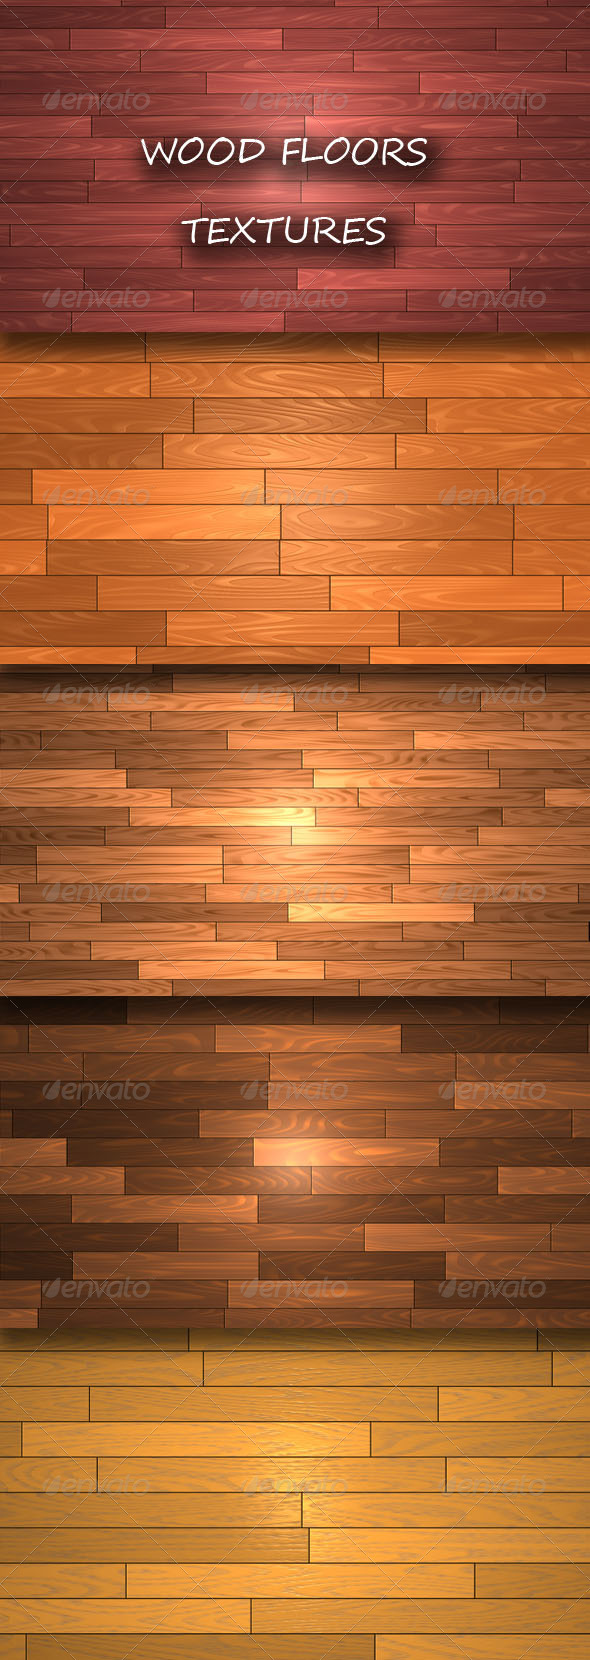 GraphicRiver Wood Floors Textures 4360260